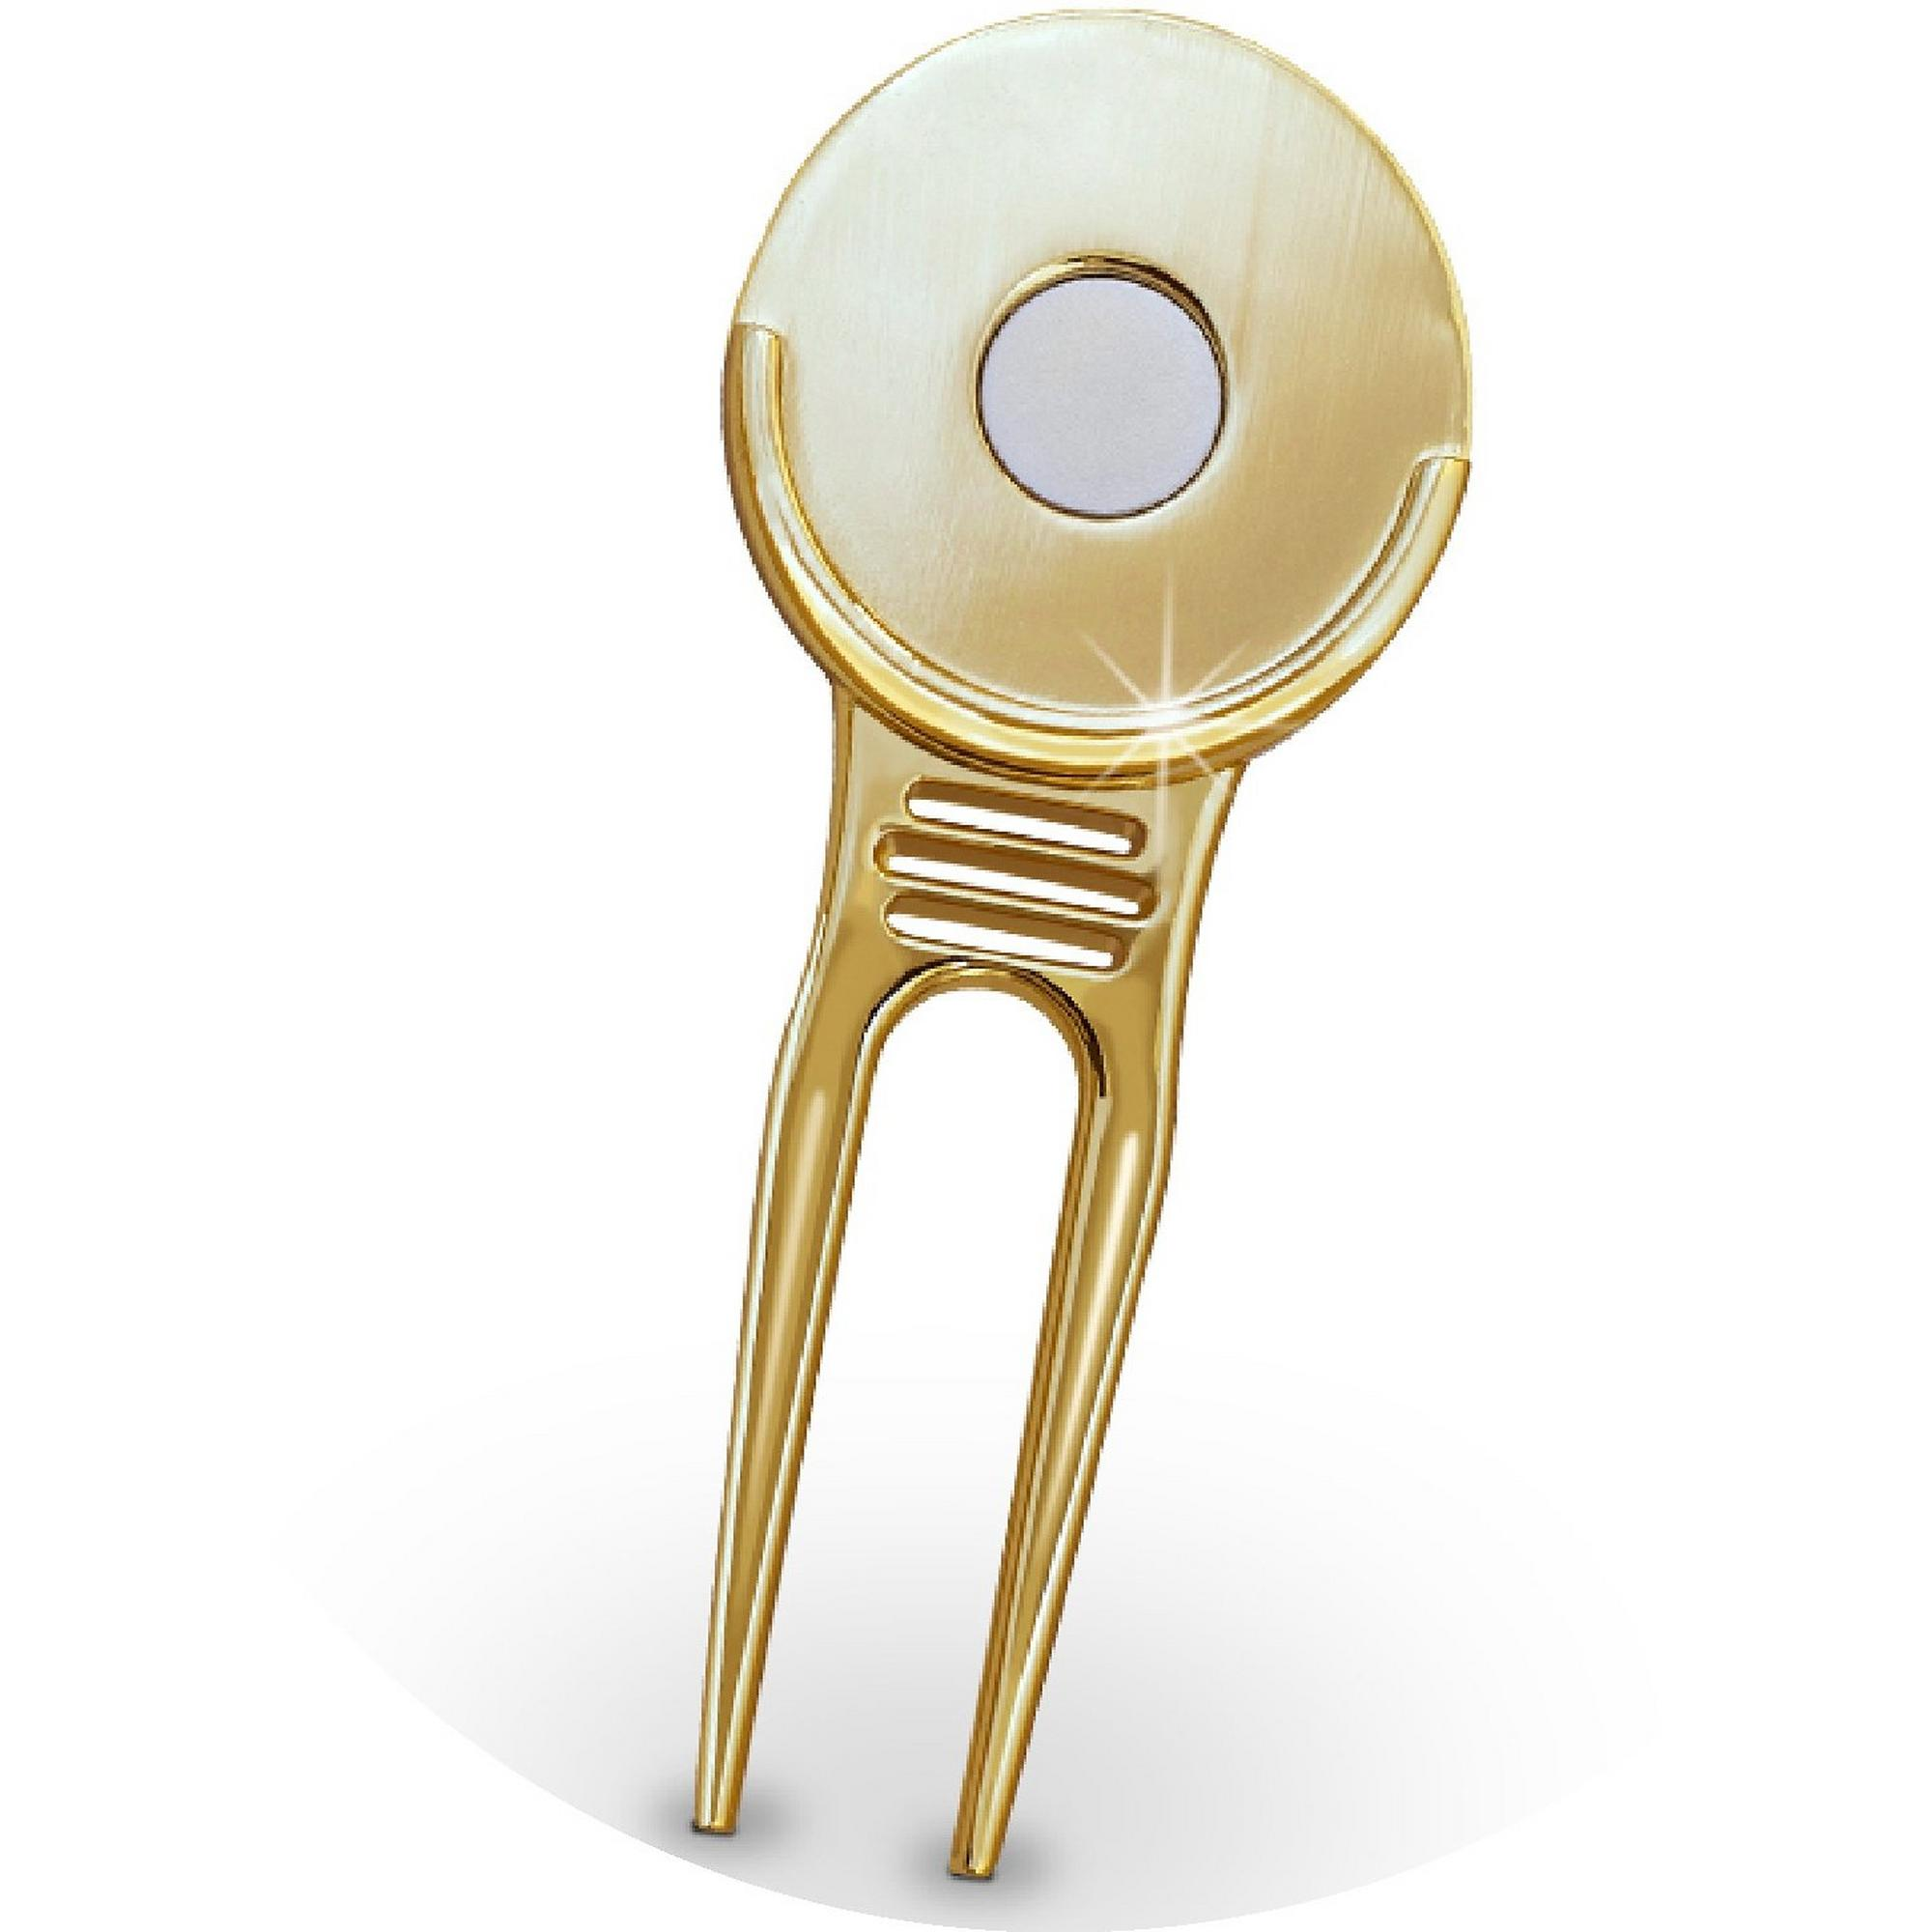 Gold Plated Divot Tool